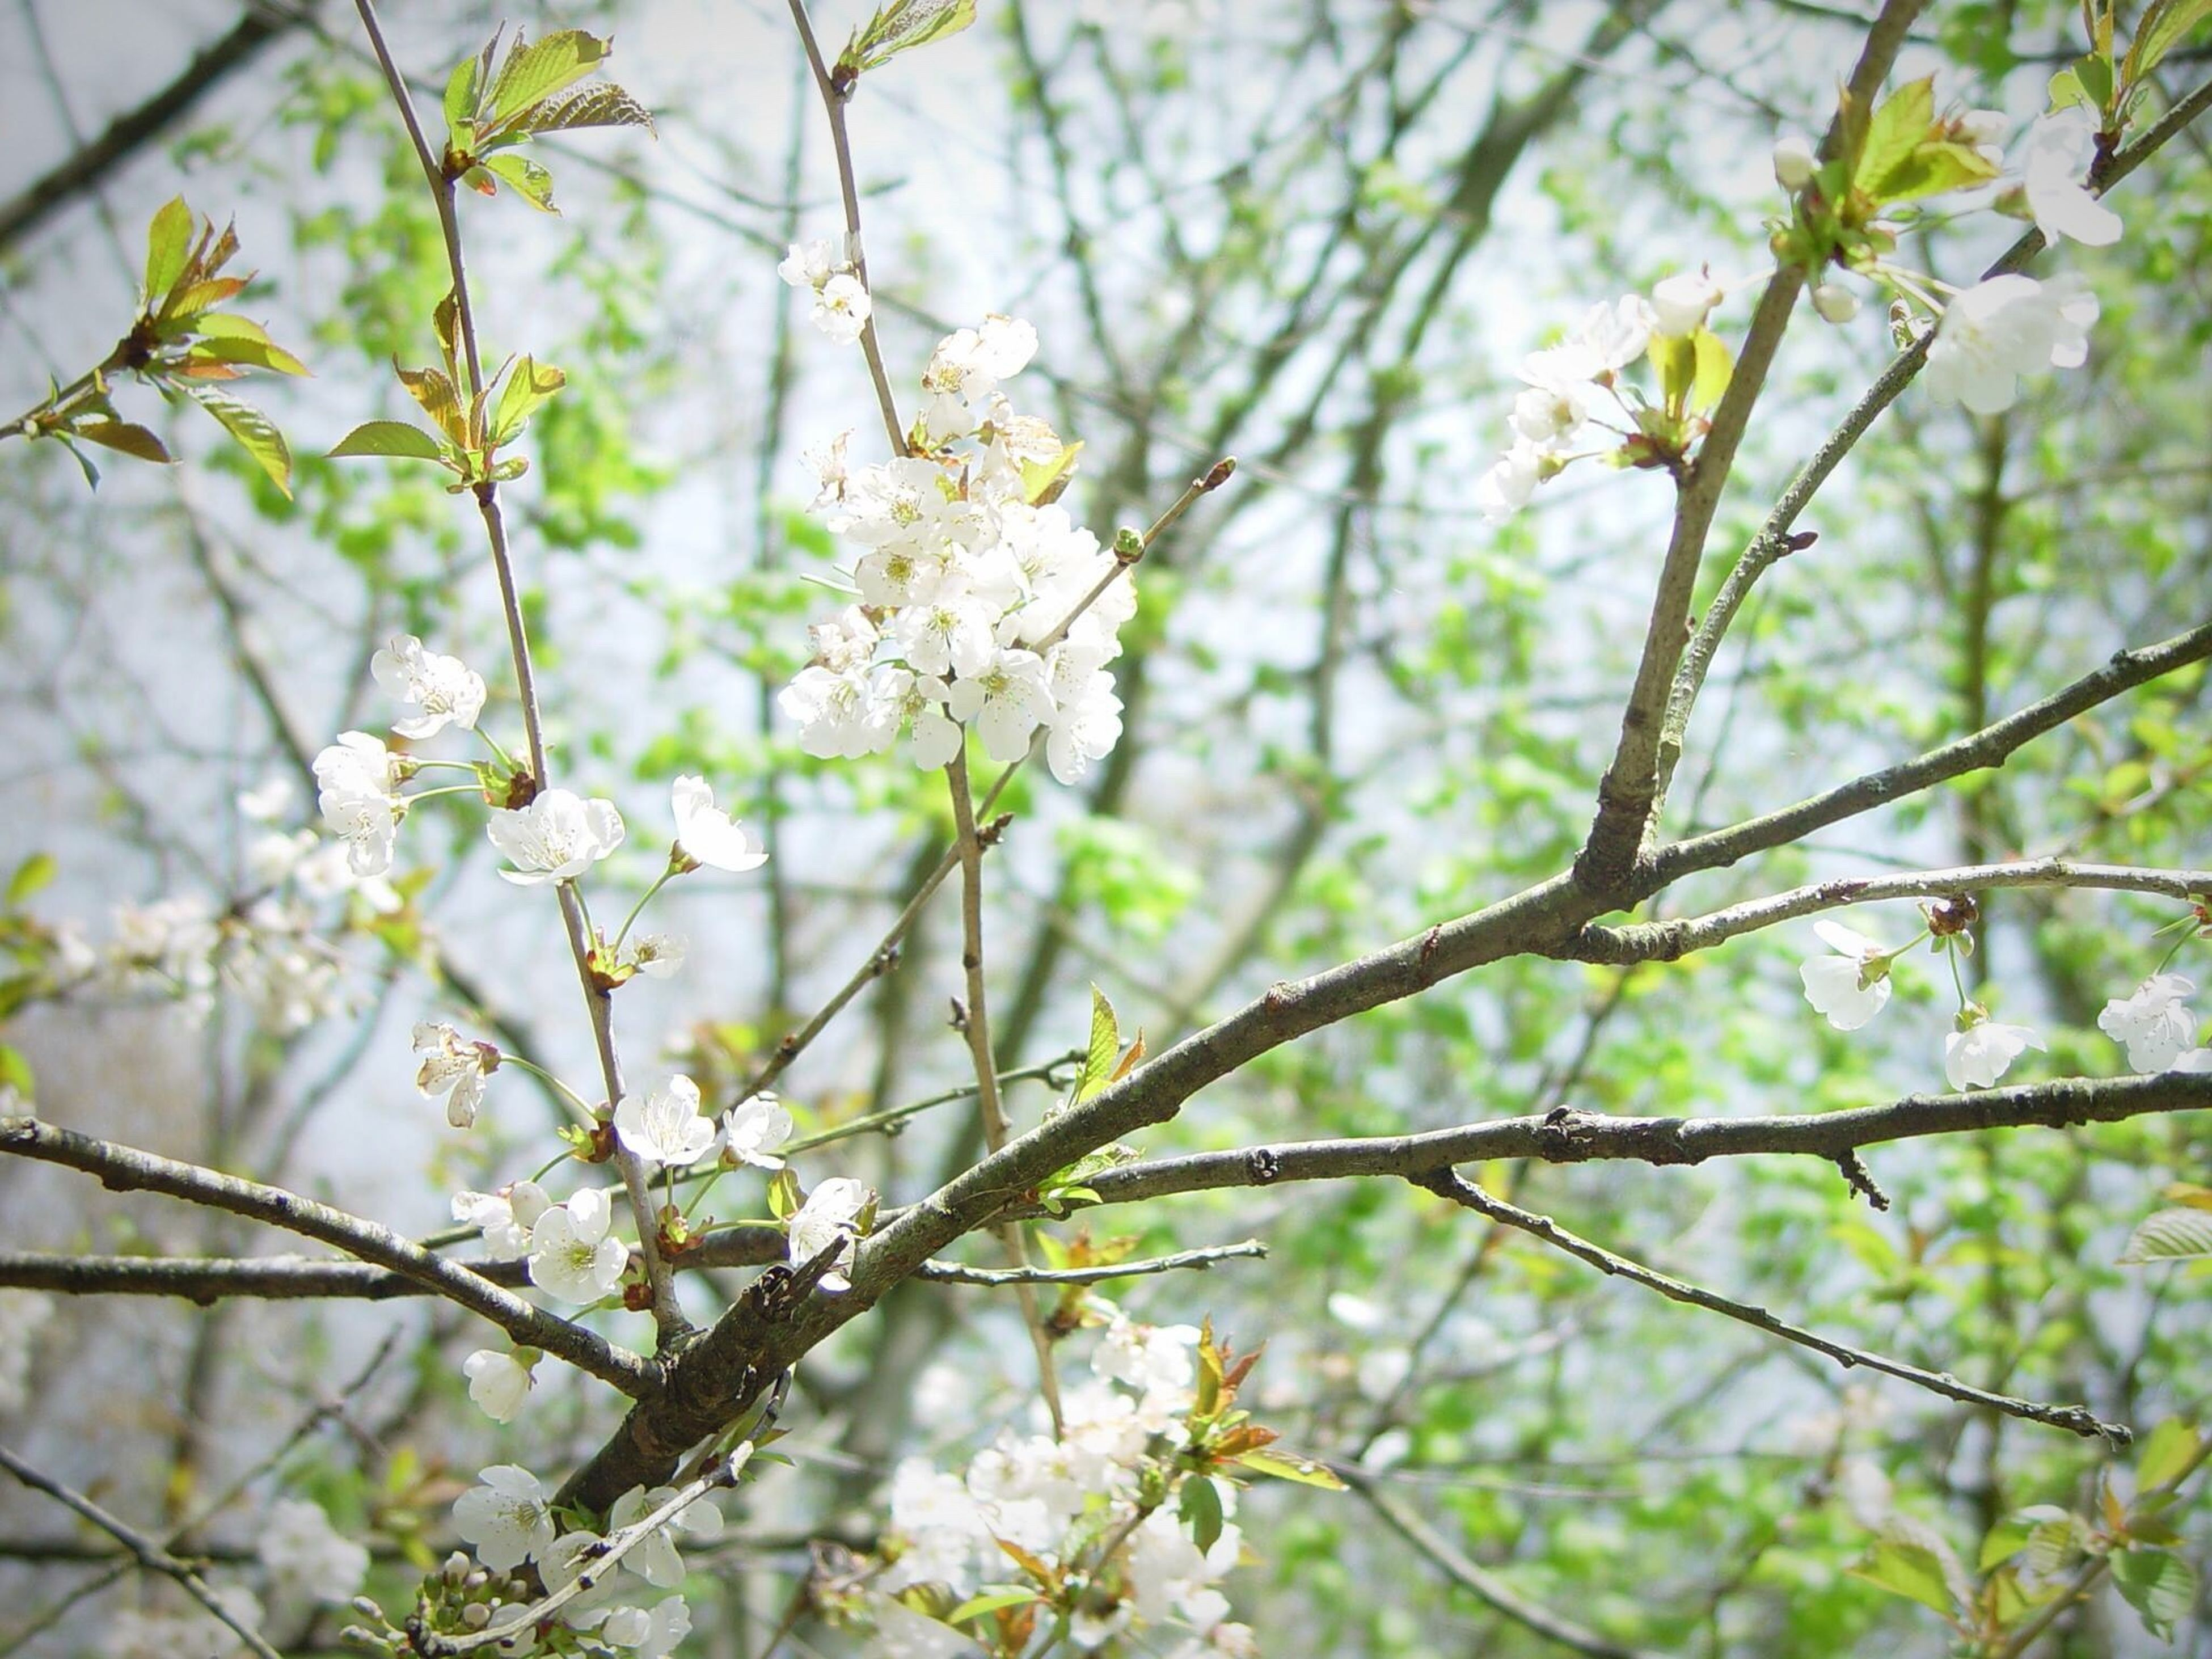 flower, branch, growth, freshness, tree, nature, beauty in nature, focus on foreground, fragility, twig, close-up, white color, blossom, low angle view, plant, outdoors, day, blooming, springtime, no people